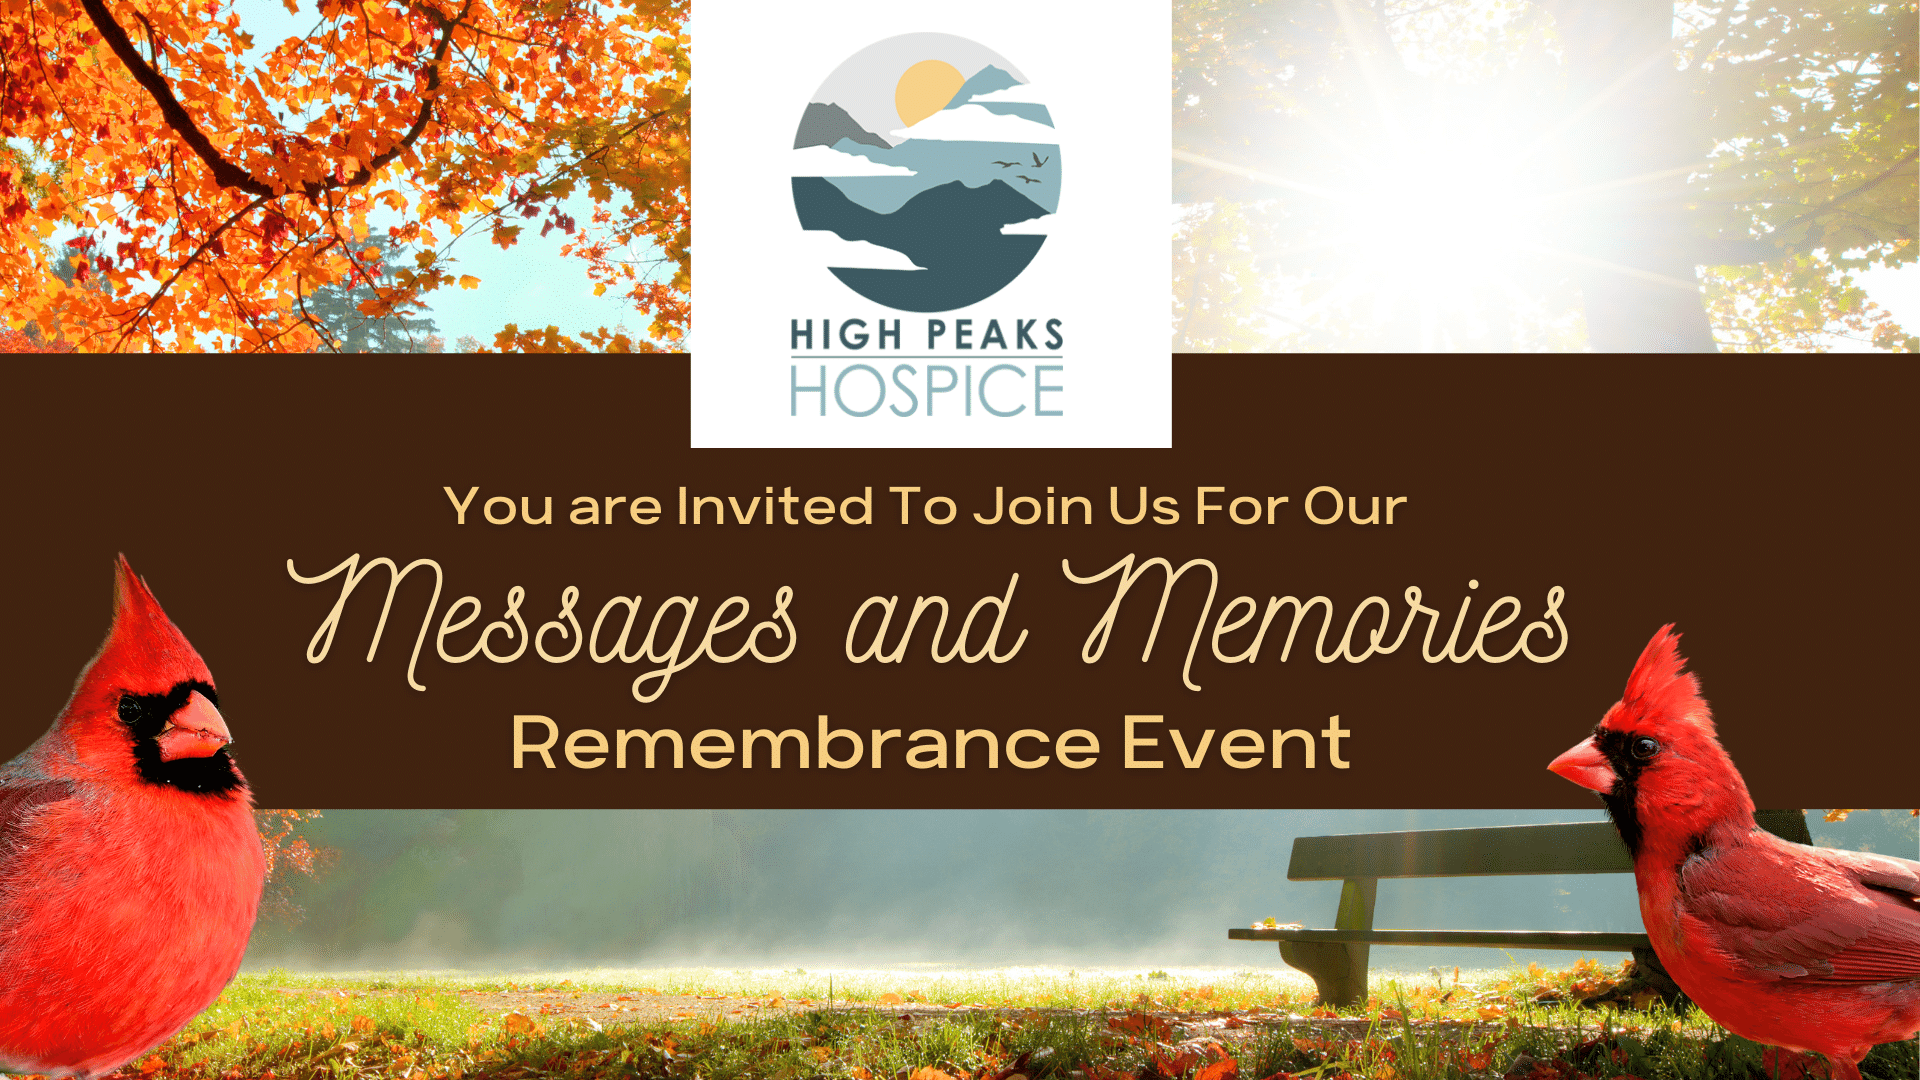 Messages and Memories Remembrance Gathering